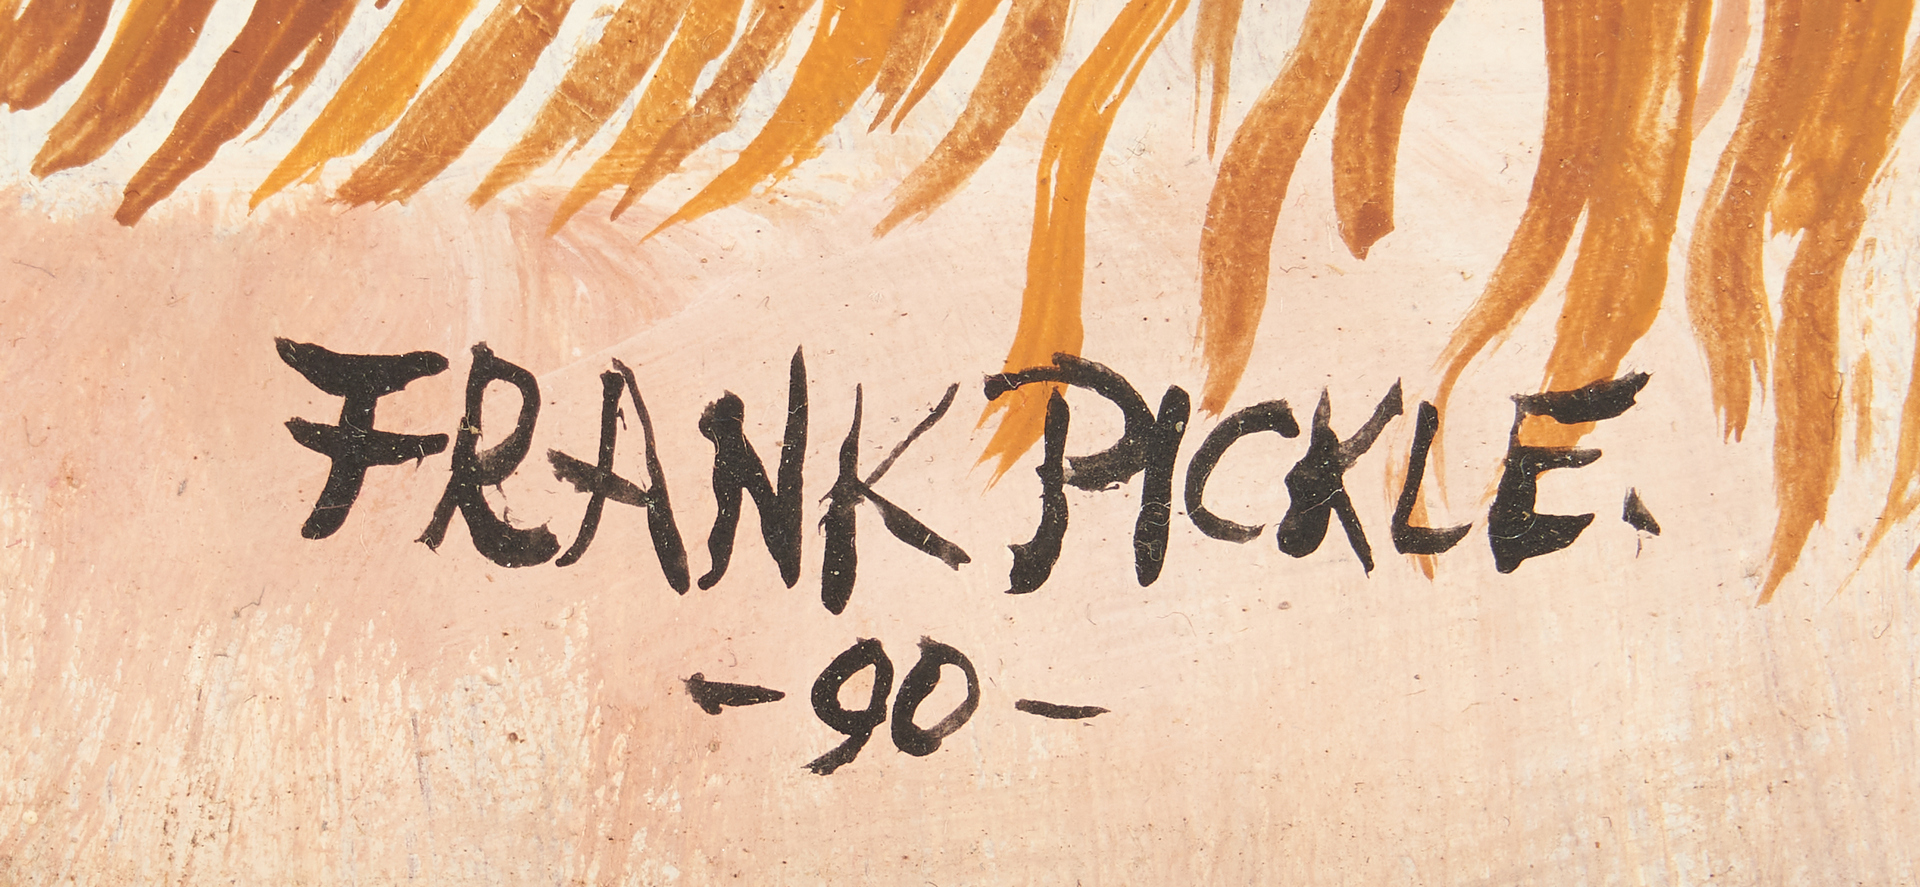 Lot 483: Frank Pickle Outsider Art Painting, Native American